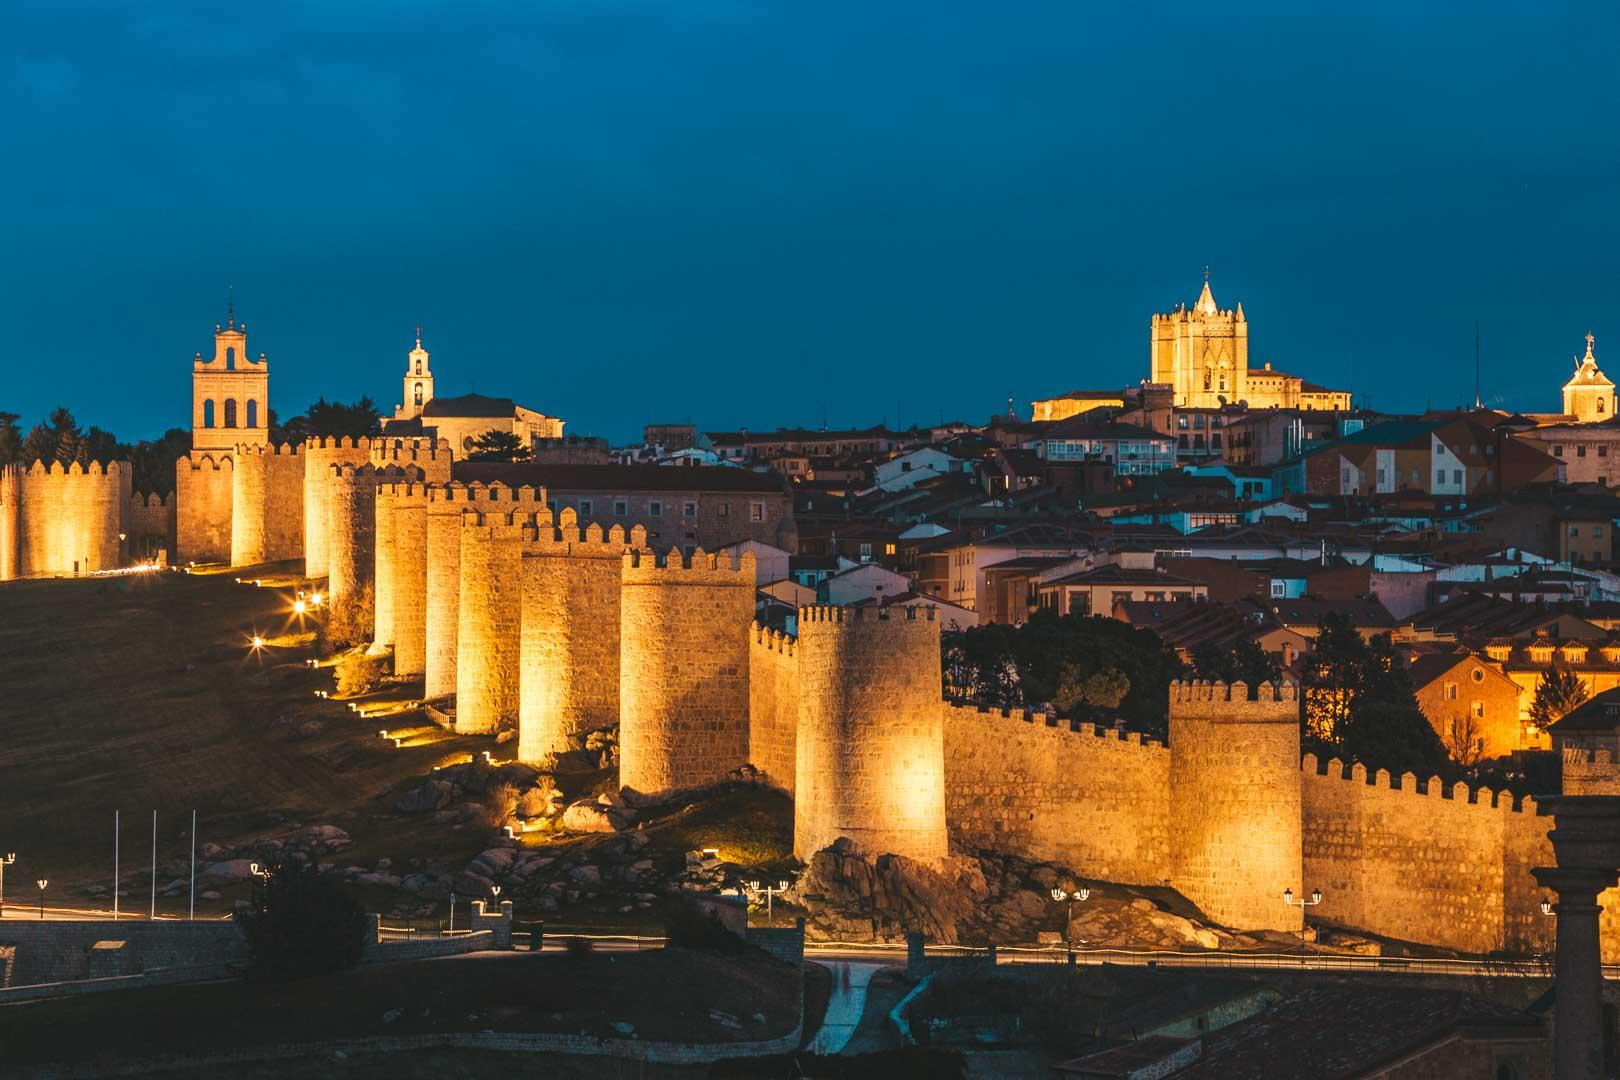 Ávila at Night